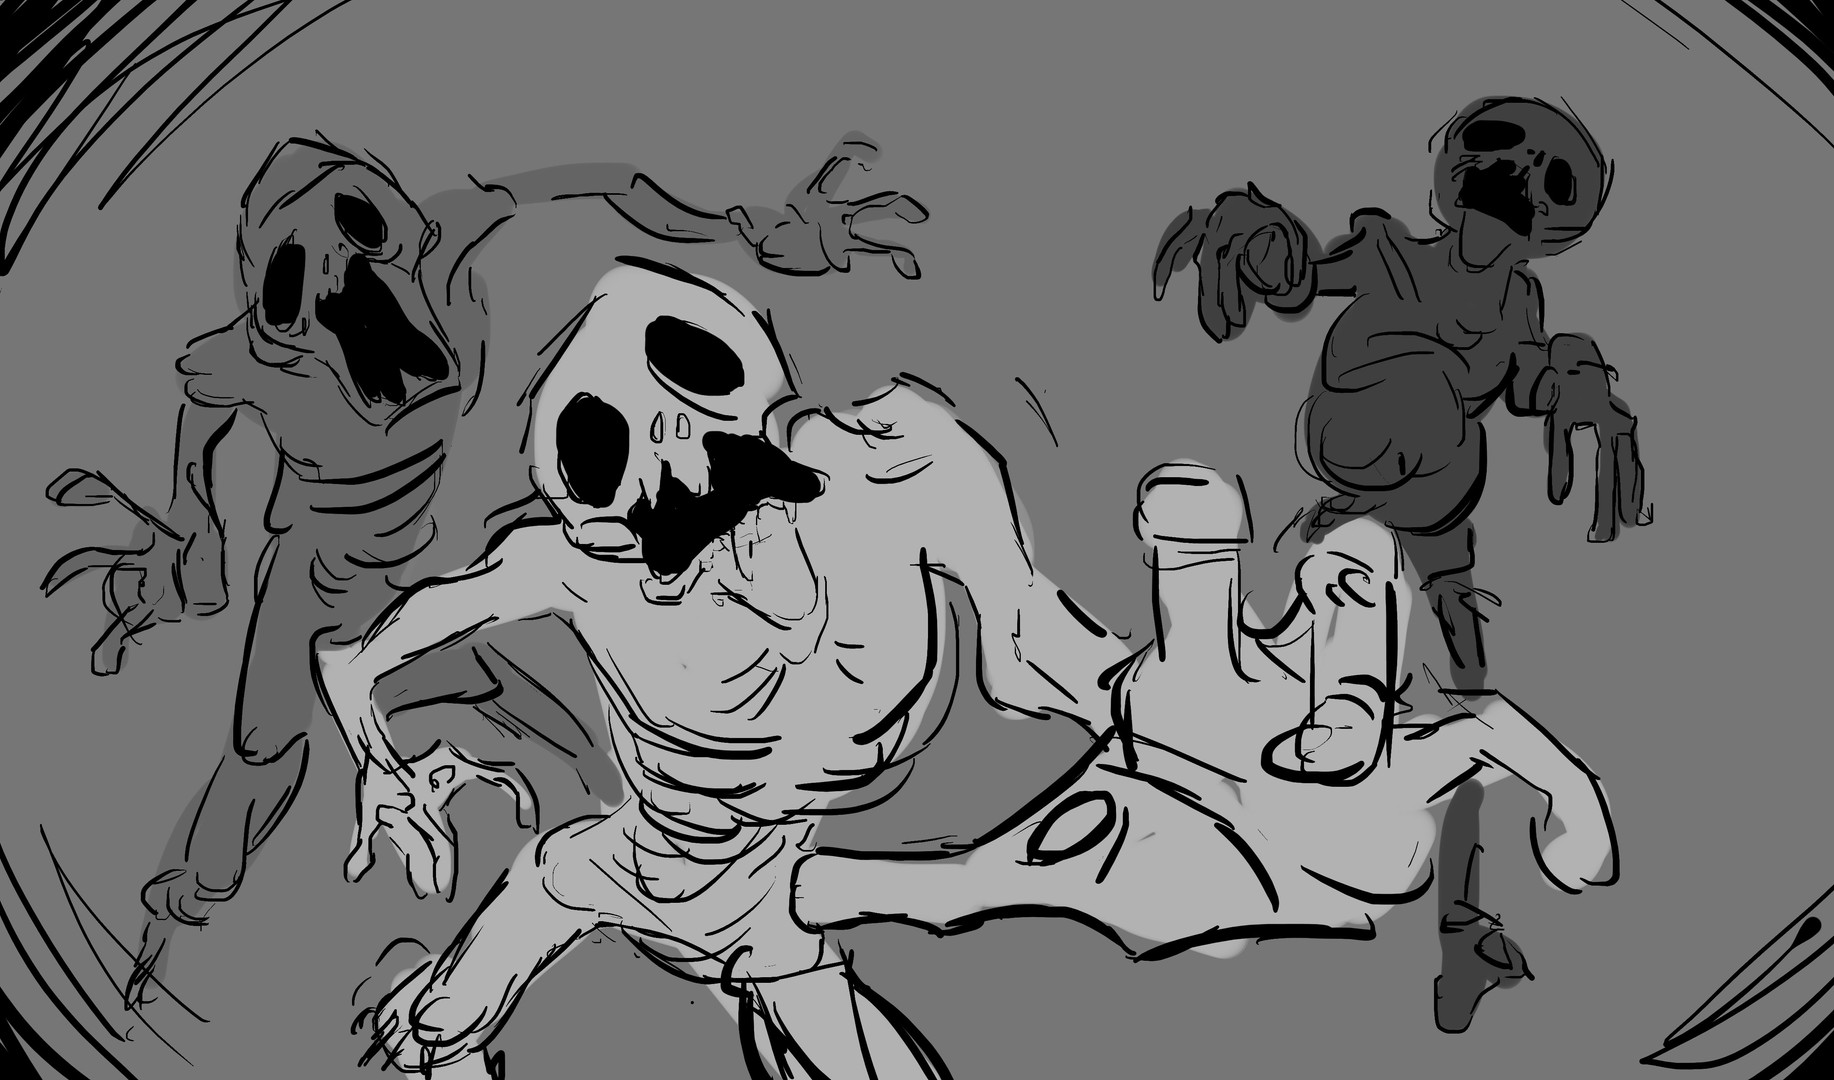 STORYBOARD - N - _0010_Layer Comp 14C.jp